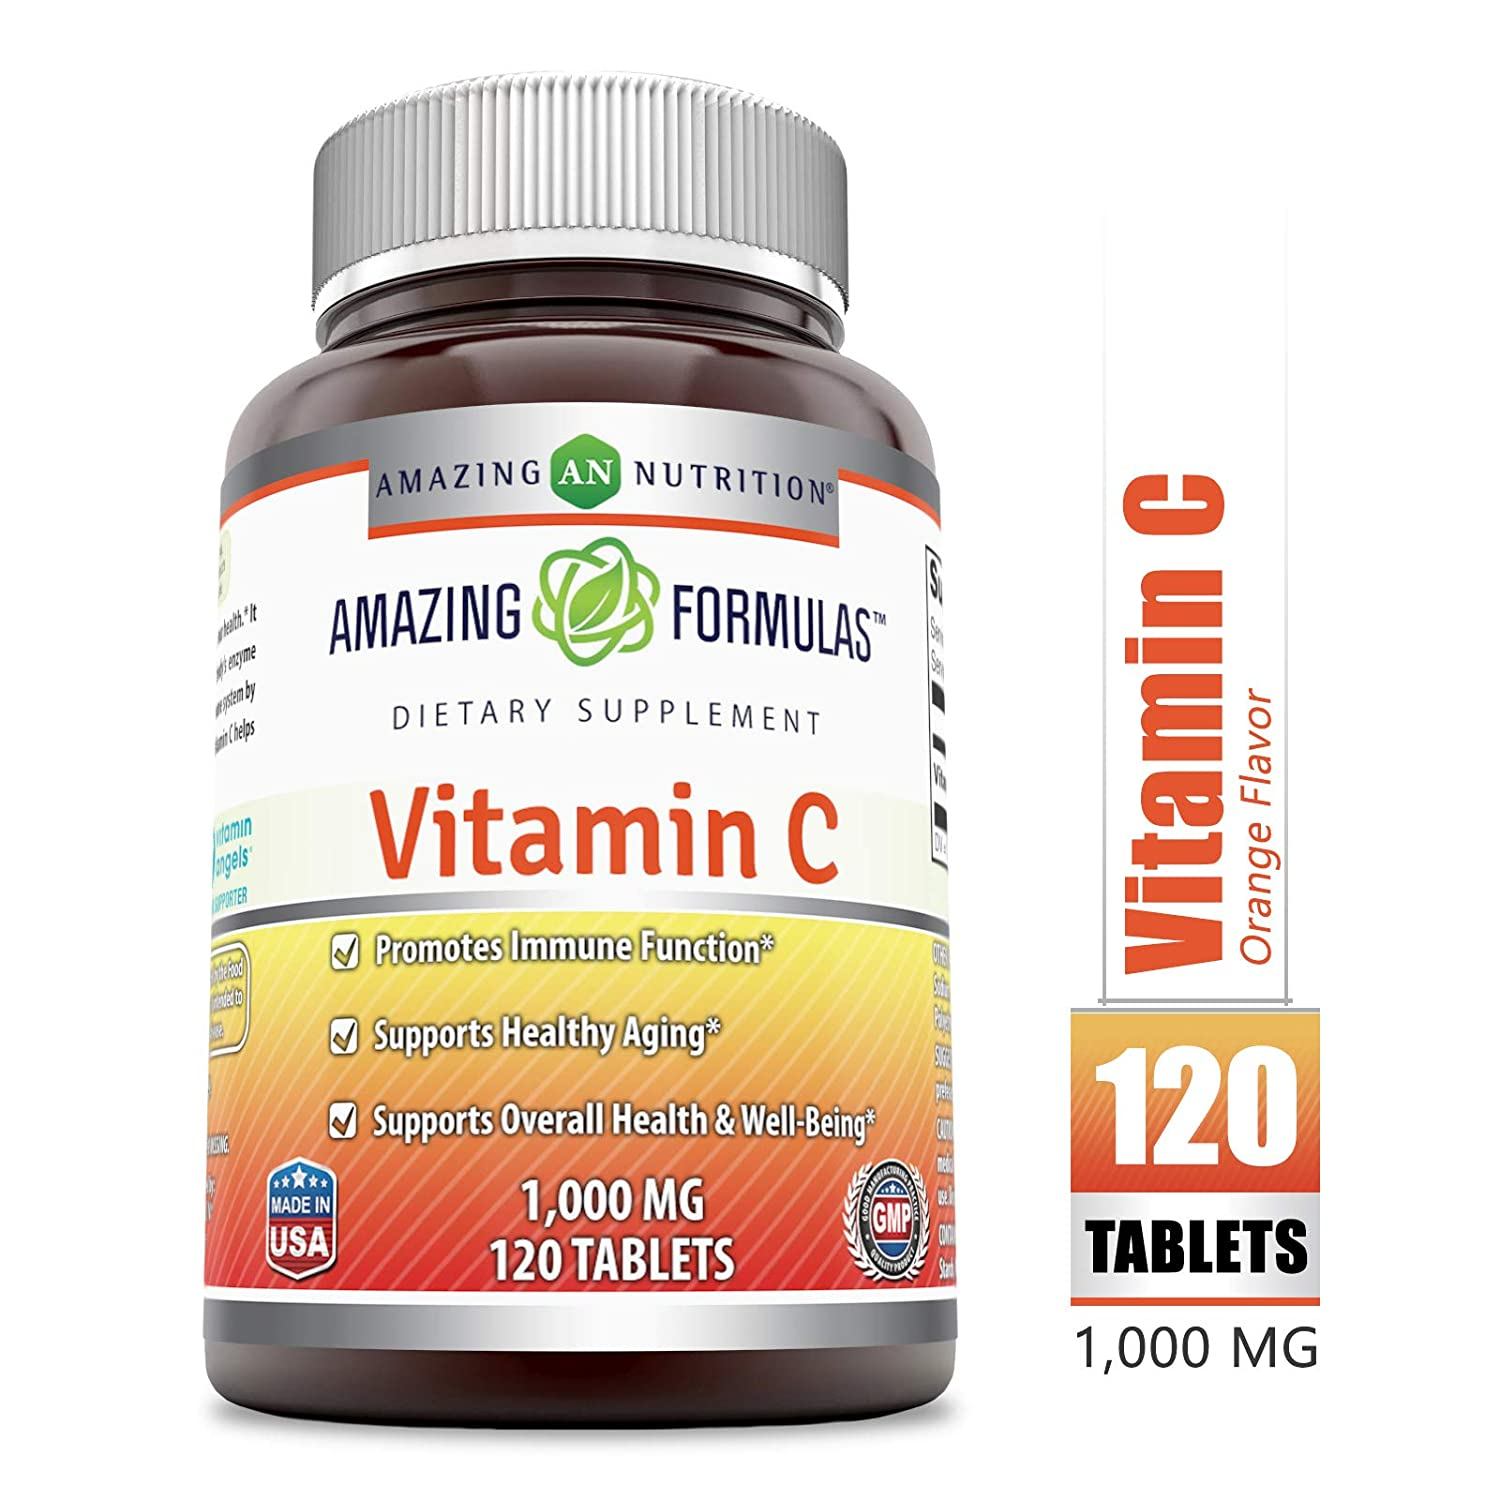 Amazing Formulas Vitamin C 1000 Mg, Tablets - (Non-GMO) Vegan - Promotes Immune Function* - Supports Healthy Aging* - Supports Overall Health & Well-Being* (120 Count)